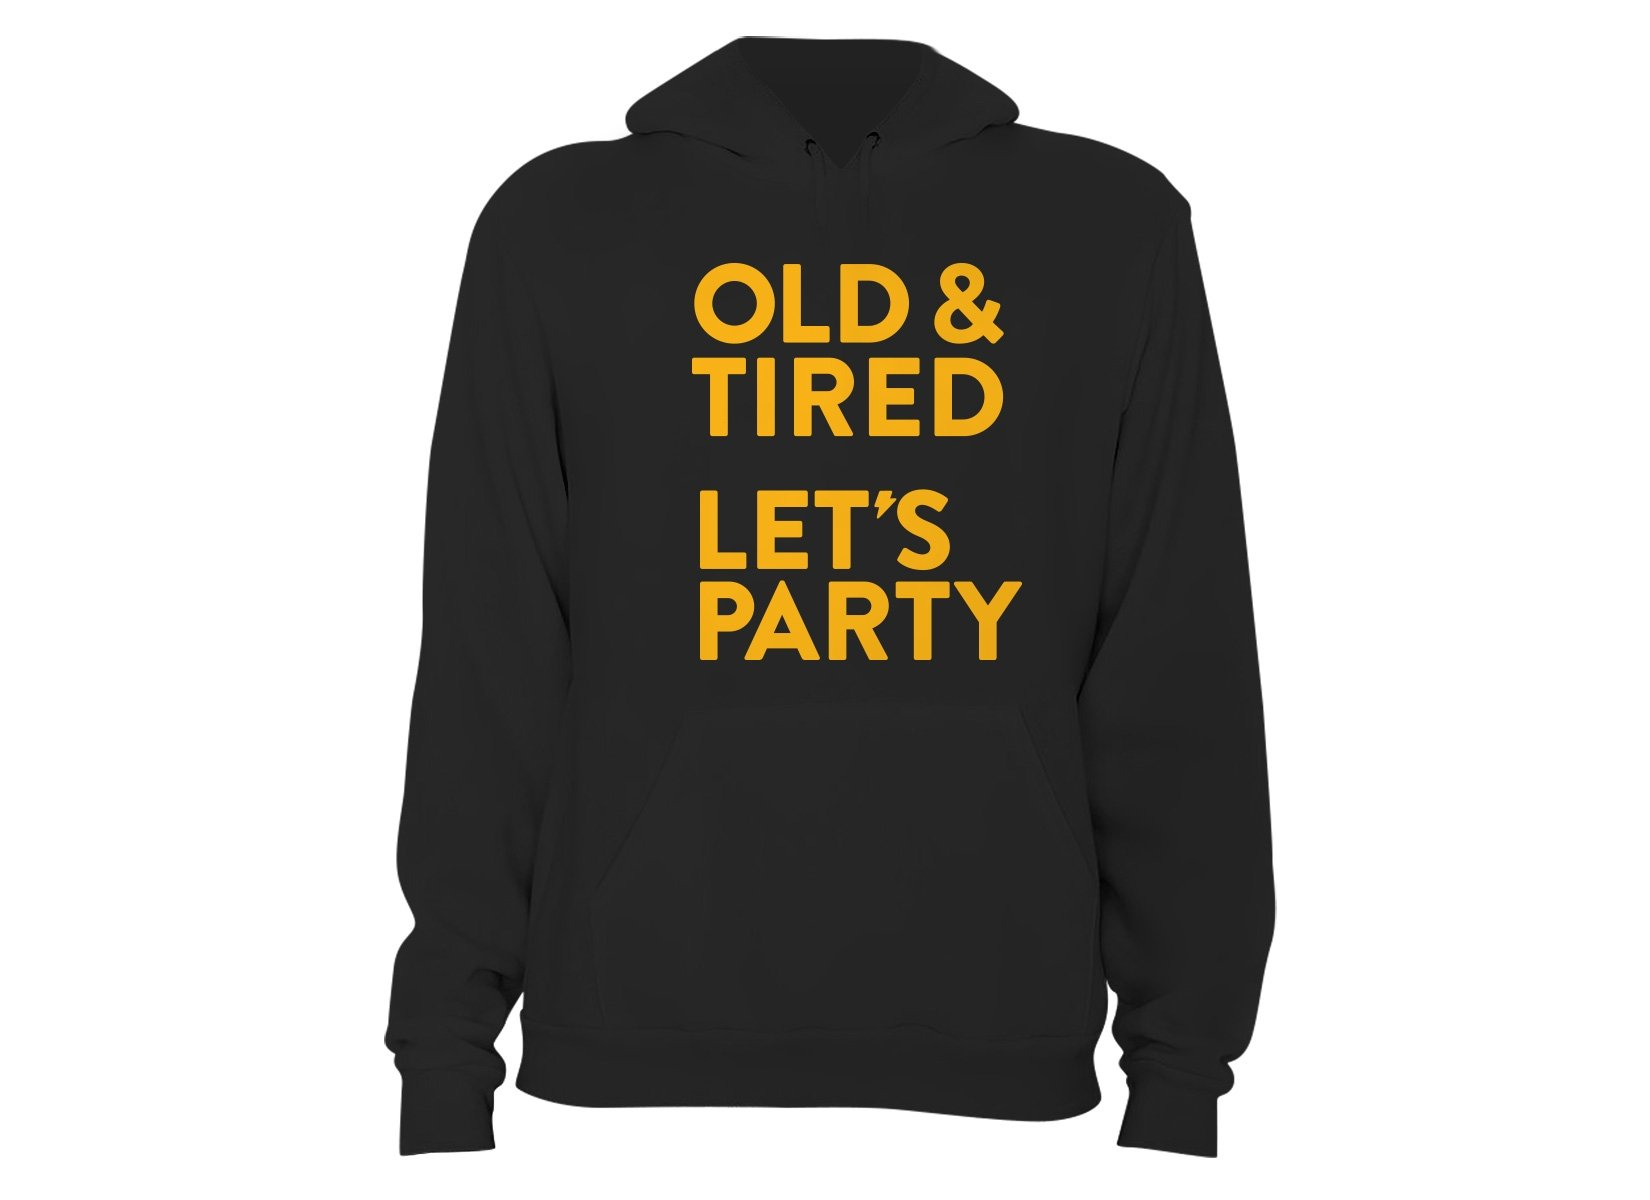 Old & Tired Let's Party on Hoodie